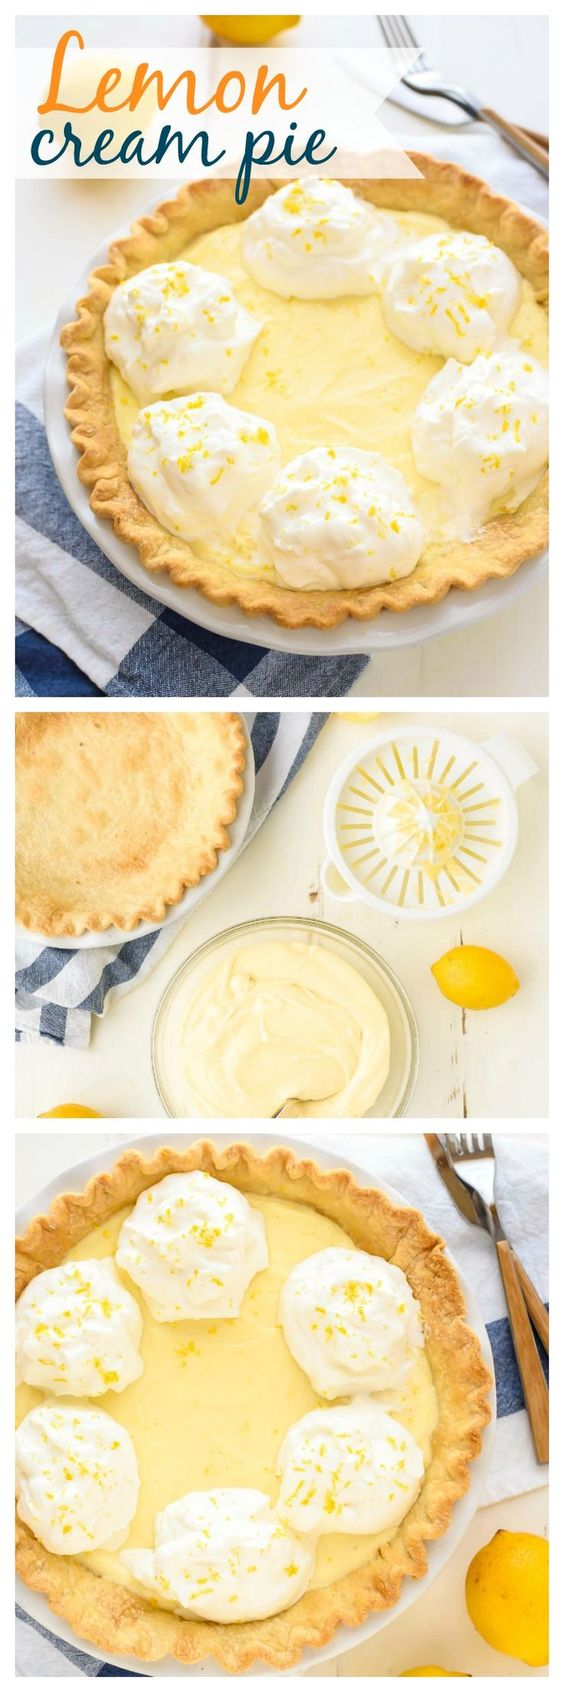 The BEST Lemon Cream Pie you will ever make and it's a perfect Easter dessert! Original recipe from my Grandma that has been in our family 50 years. Luscious, creamy, and made entirely from scratch. No lemon pie tastes better! www.wellplated.com @wellplated